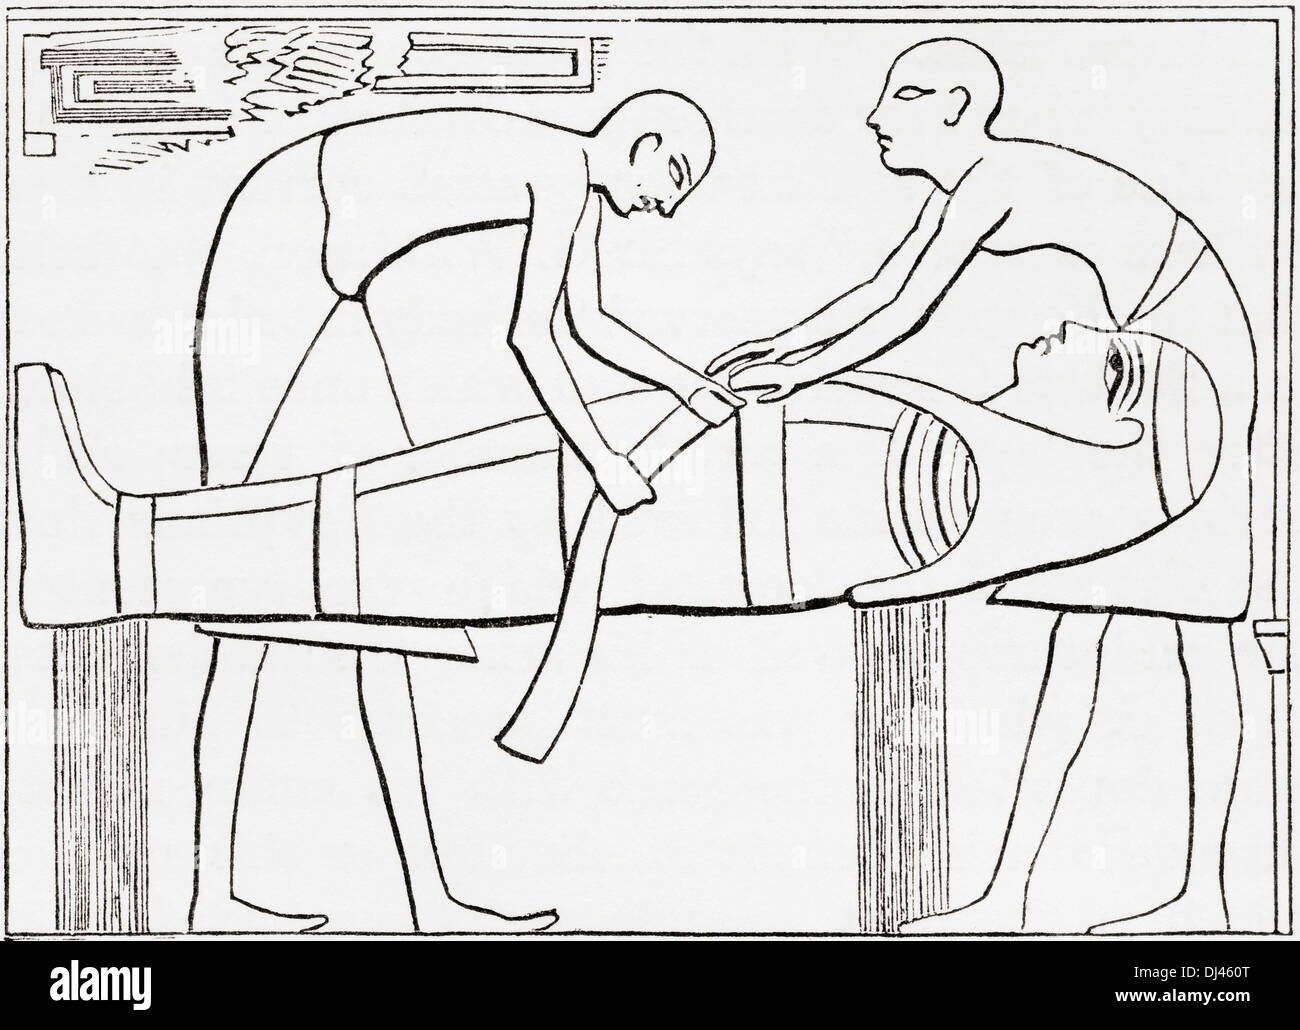 Ancient Egyptians swathing or wrapping bandages round a mummy. - Stock Image